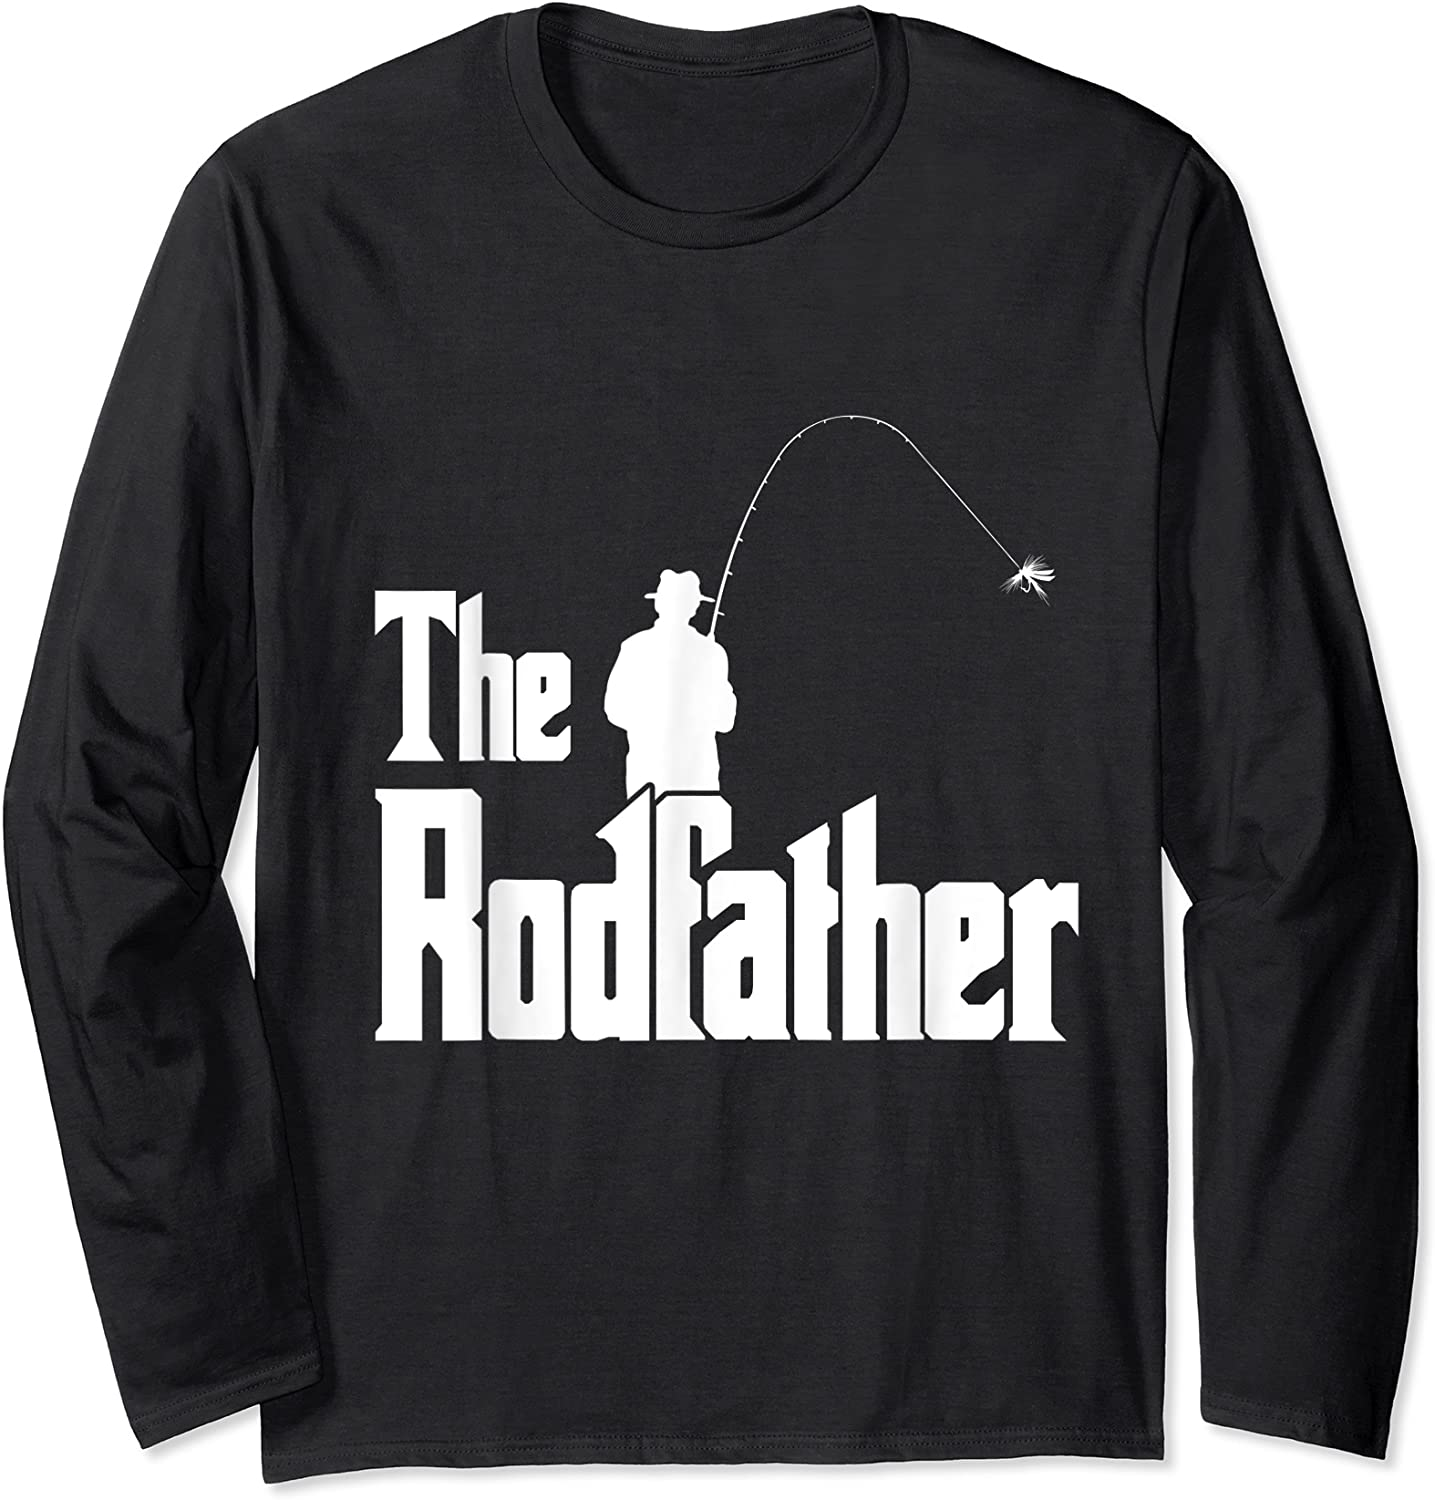 The Rodfather Is On The River This Christmas T-shirt Long Sleeve T-shirt